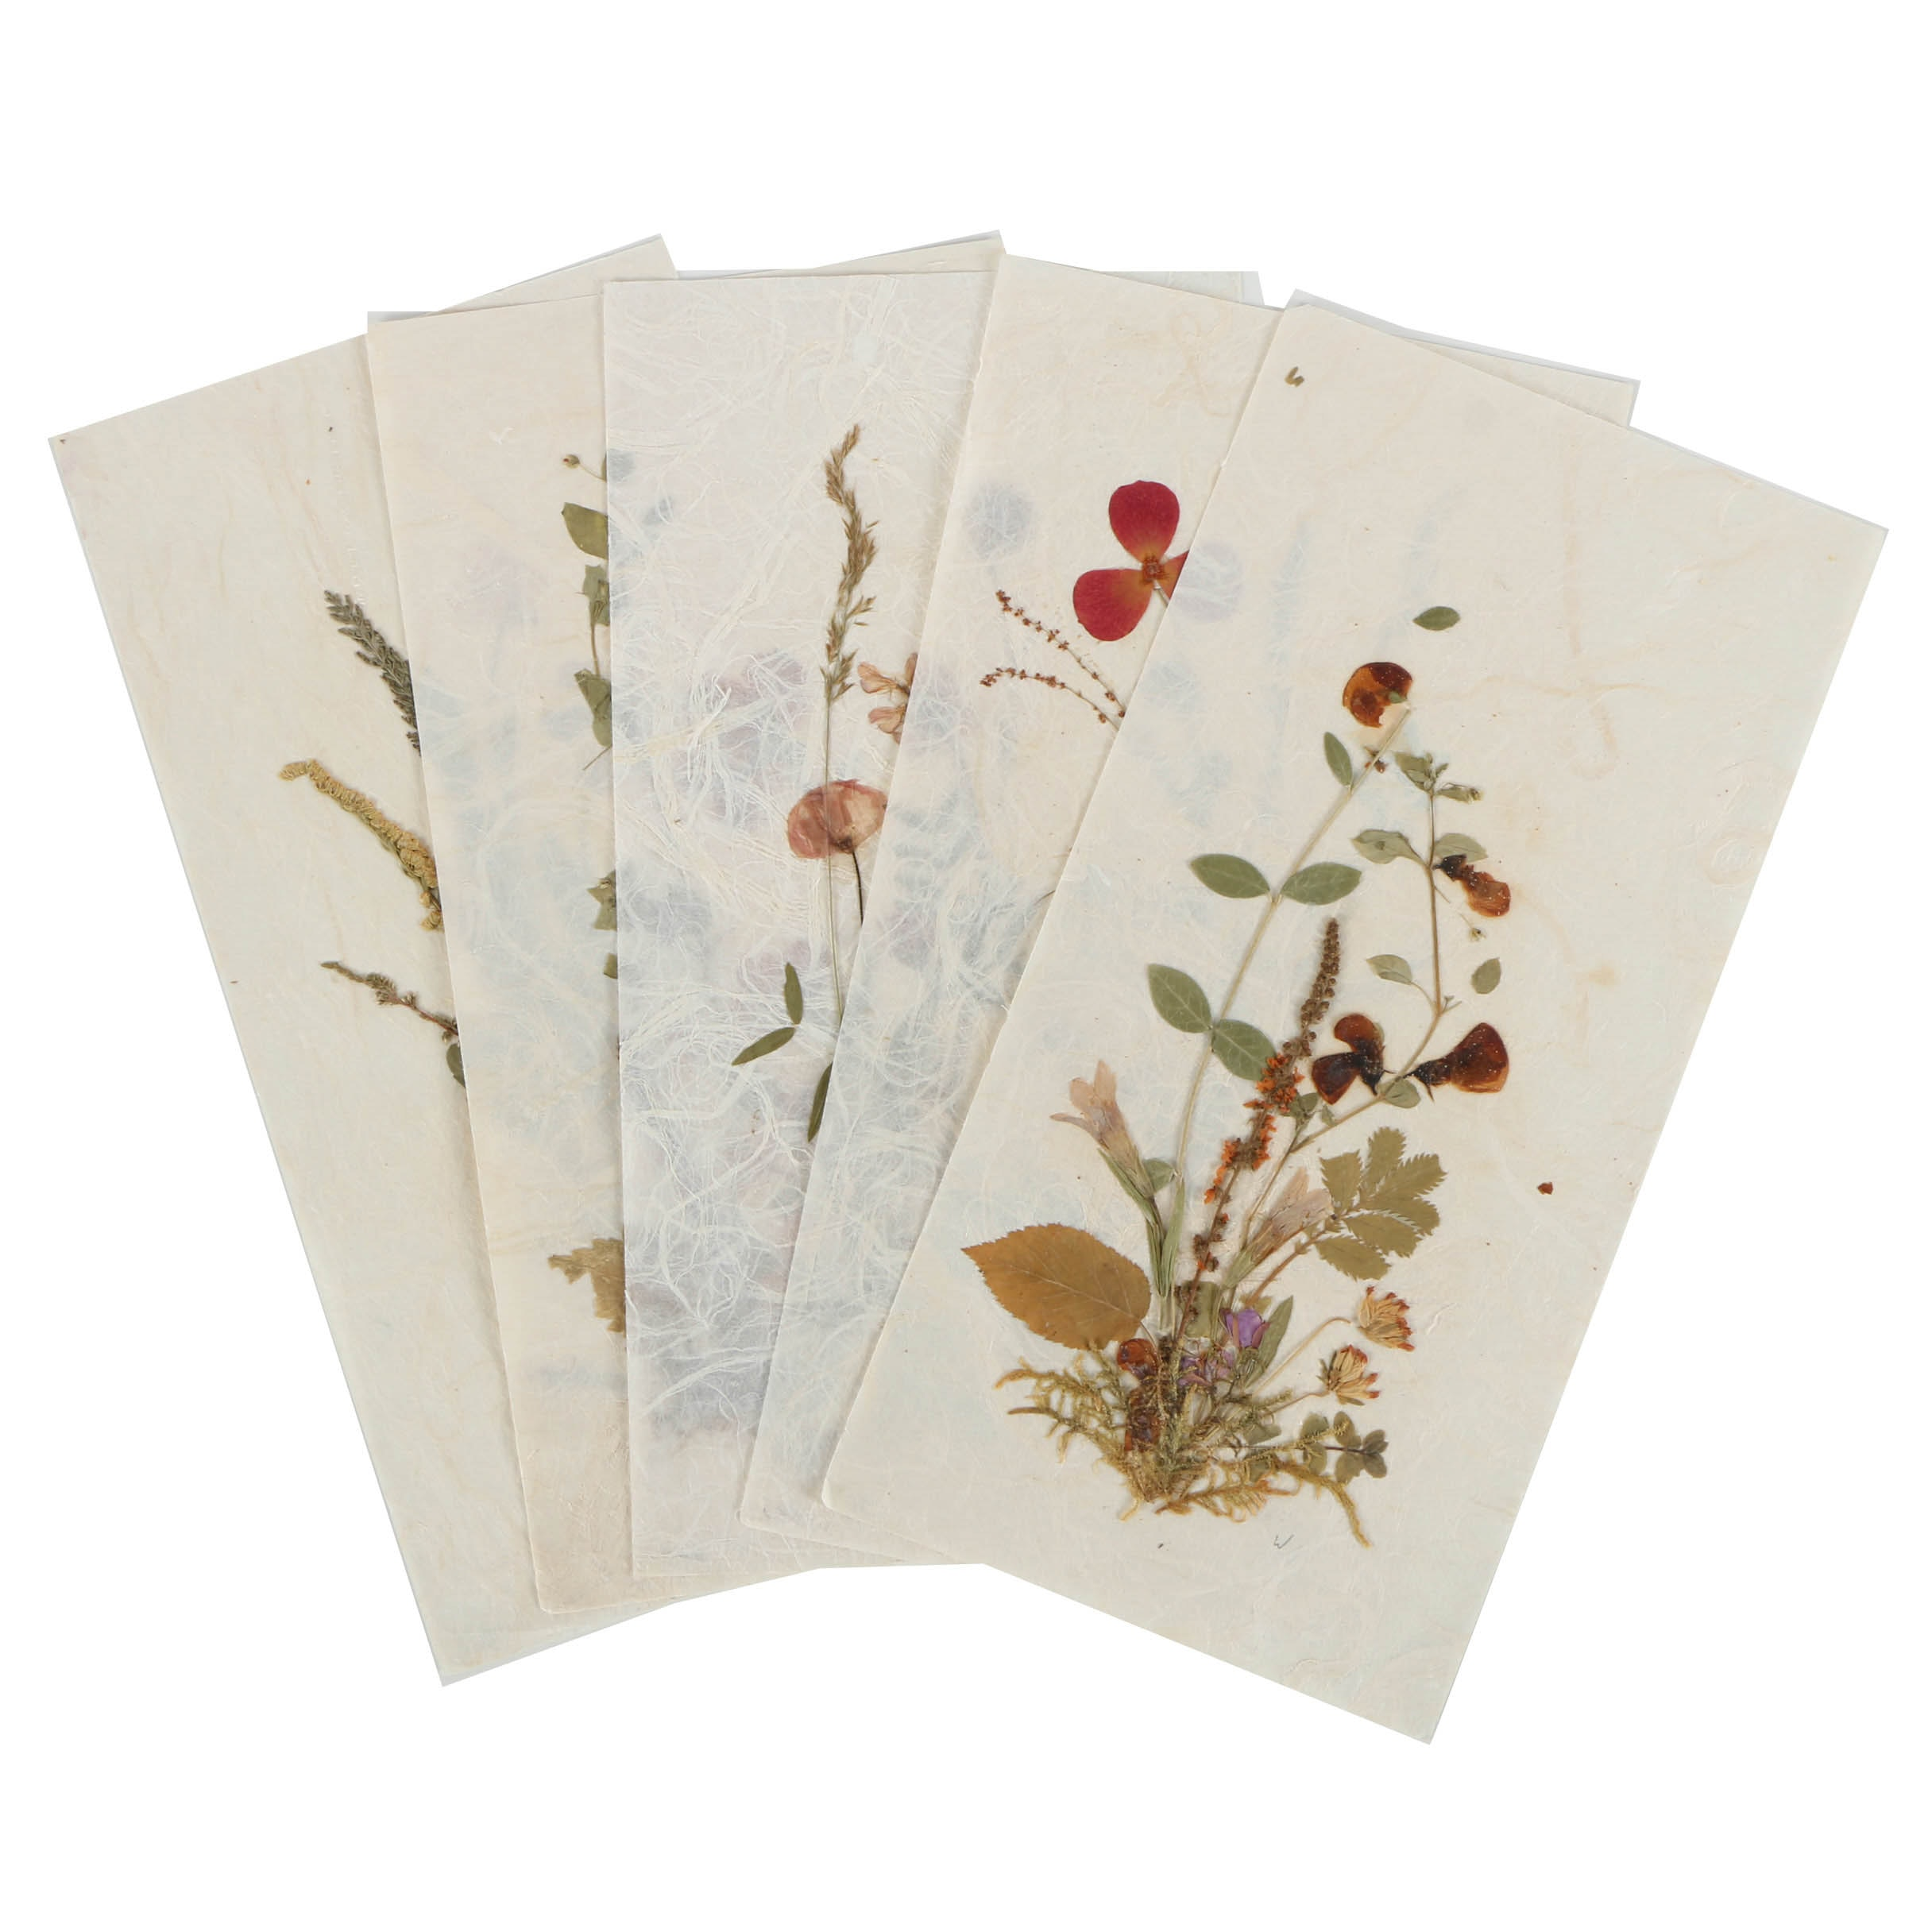 Collection of Pressed Flower Assemblages on Wove Paper